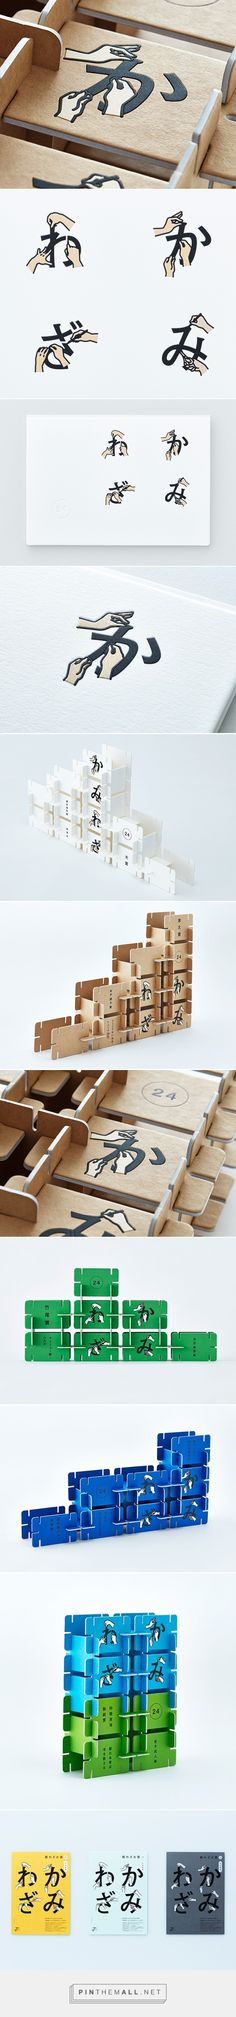 kamiwaza paper craft awards identity by - a grouped images picture - Pin Them All Brand Packaging, Packaging Design, Branding Design, Logo Design, Graphic Design, Japanese Prints, Japanese Design, Web Design, 2017 Design